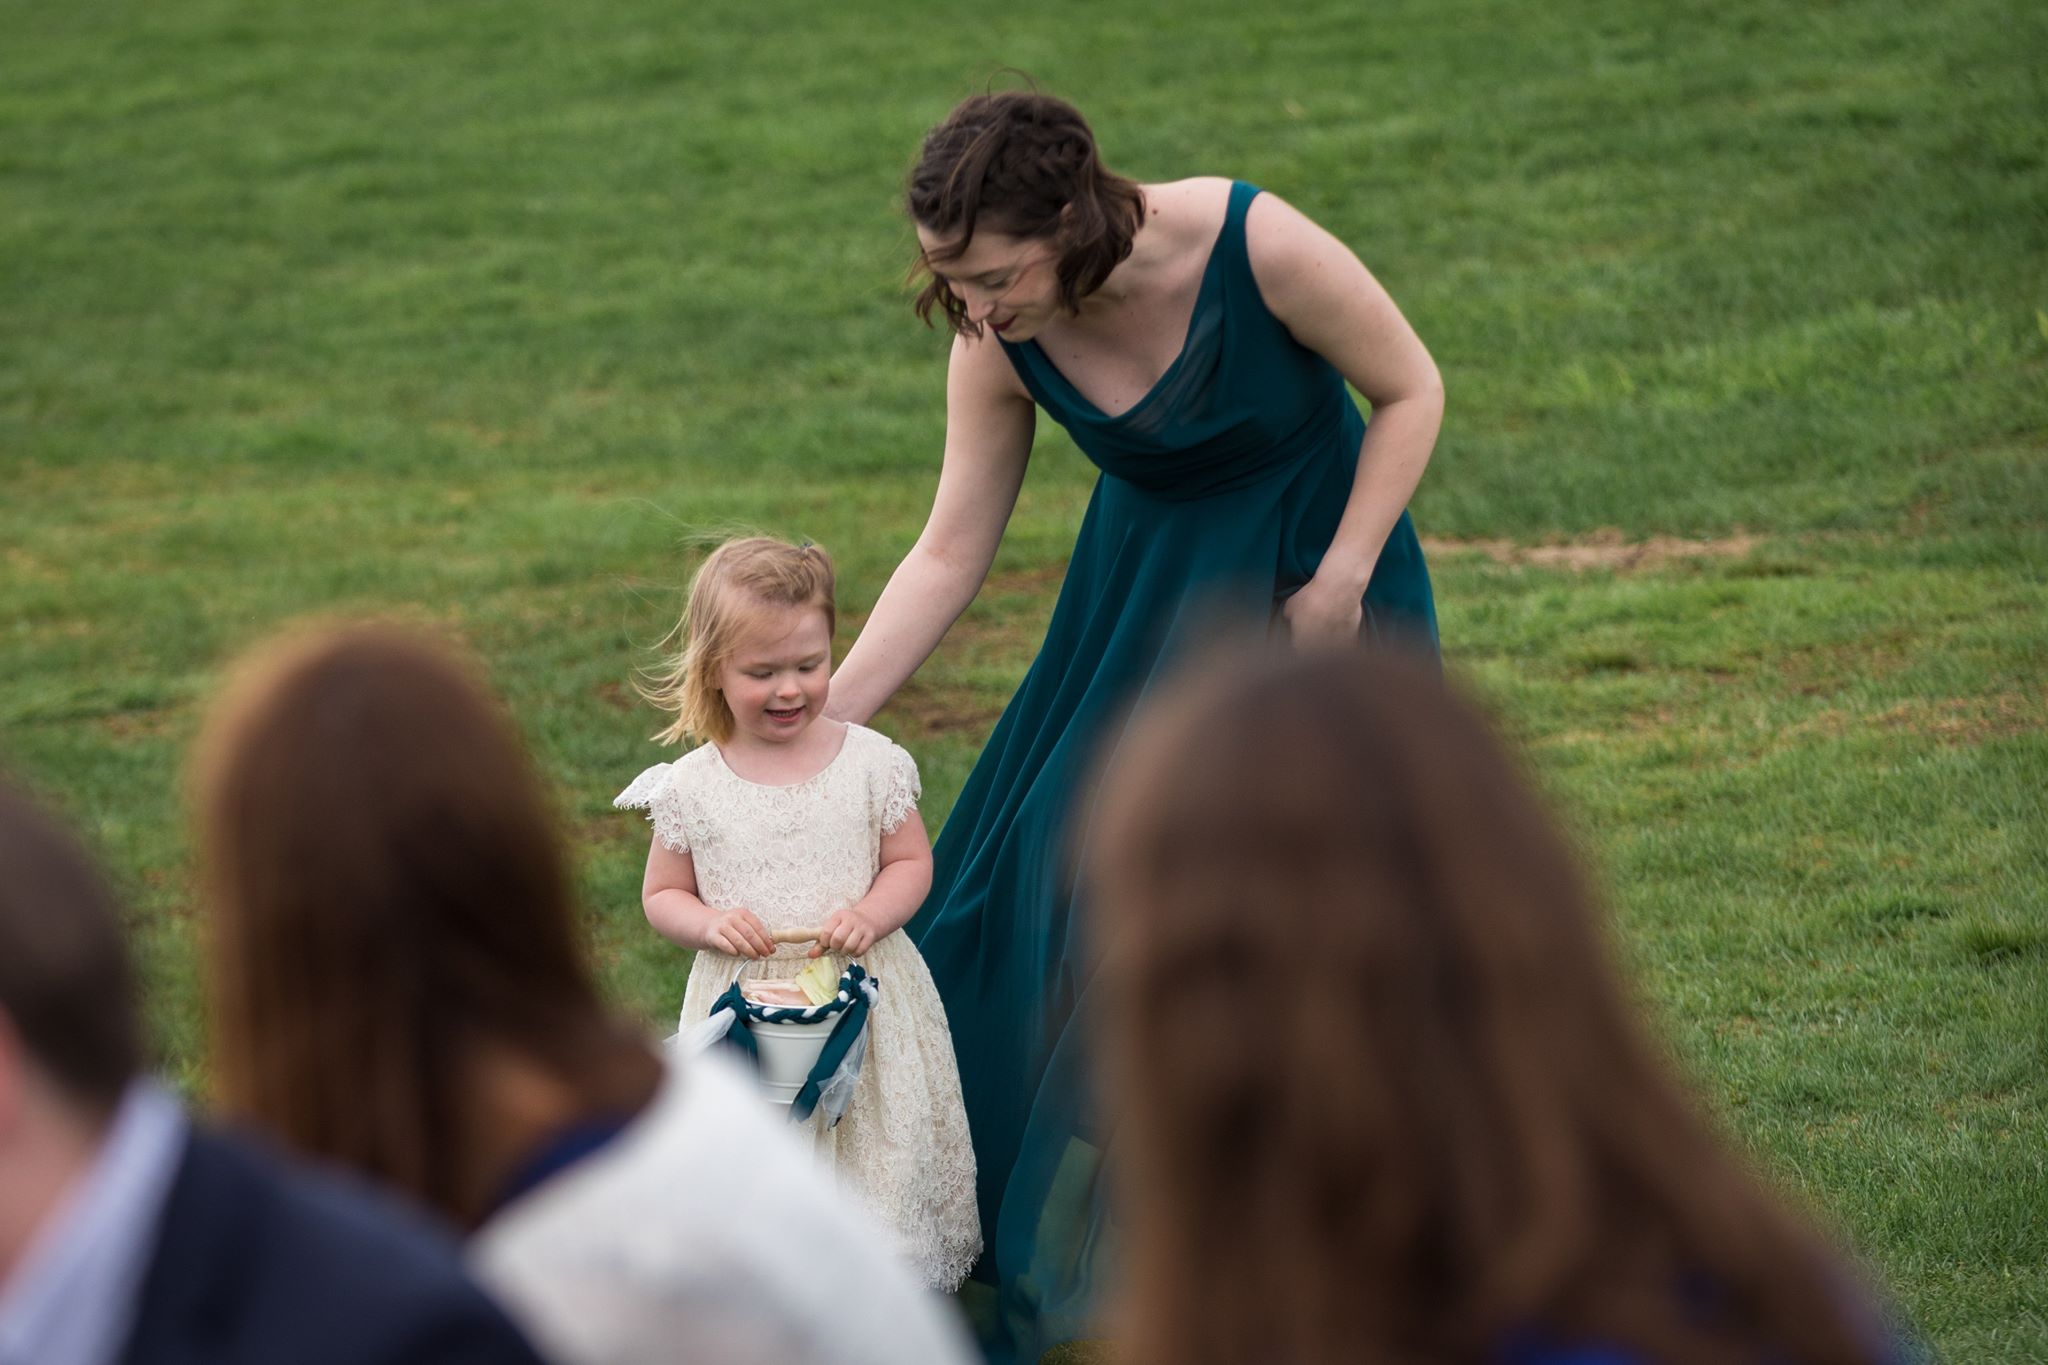 Winnie and Alisa at the Wedding